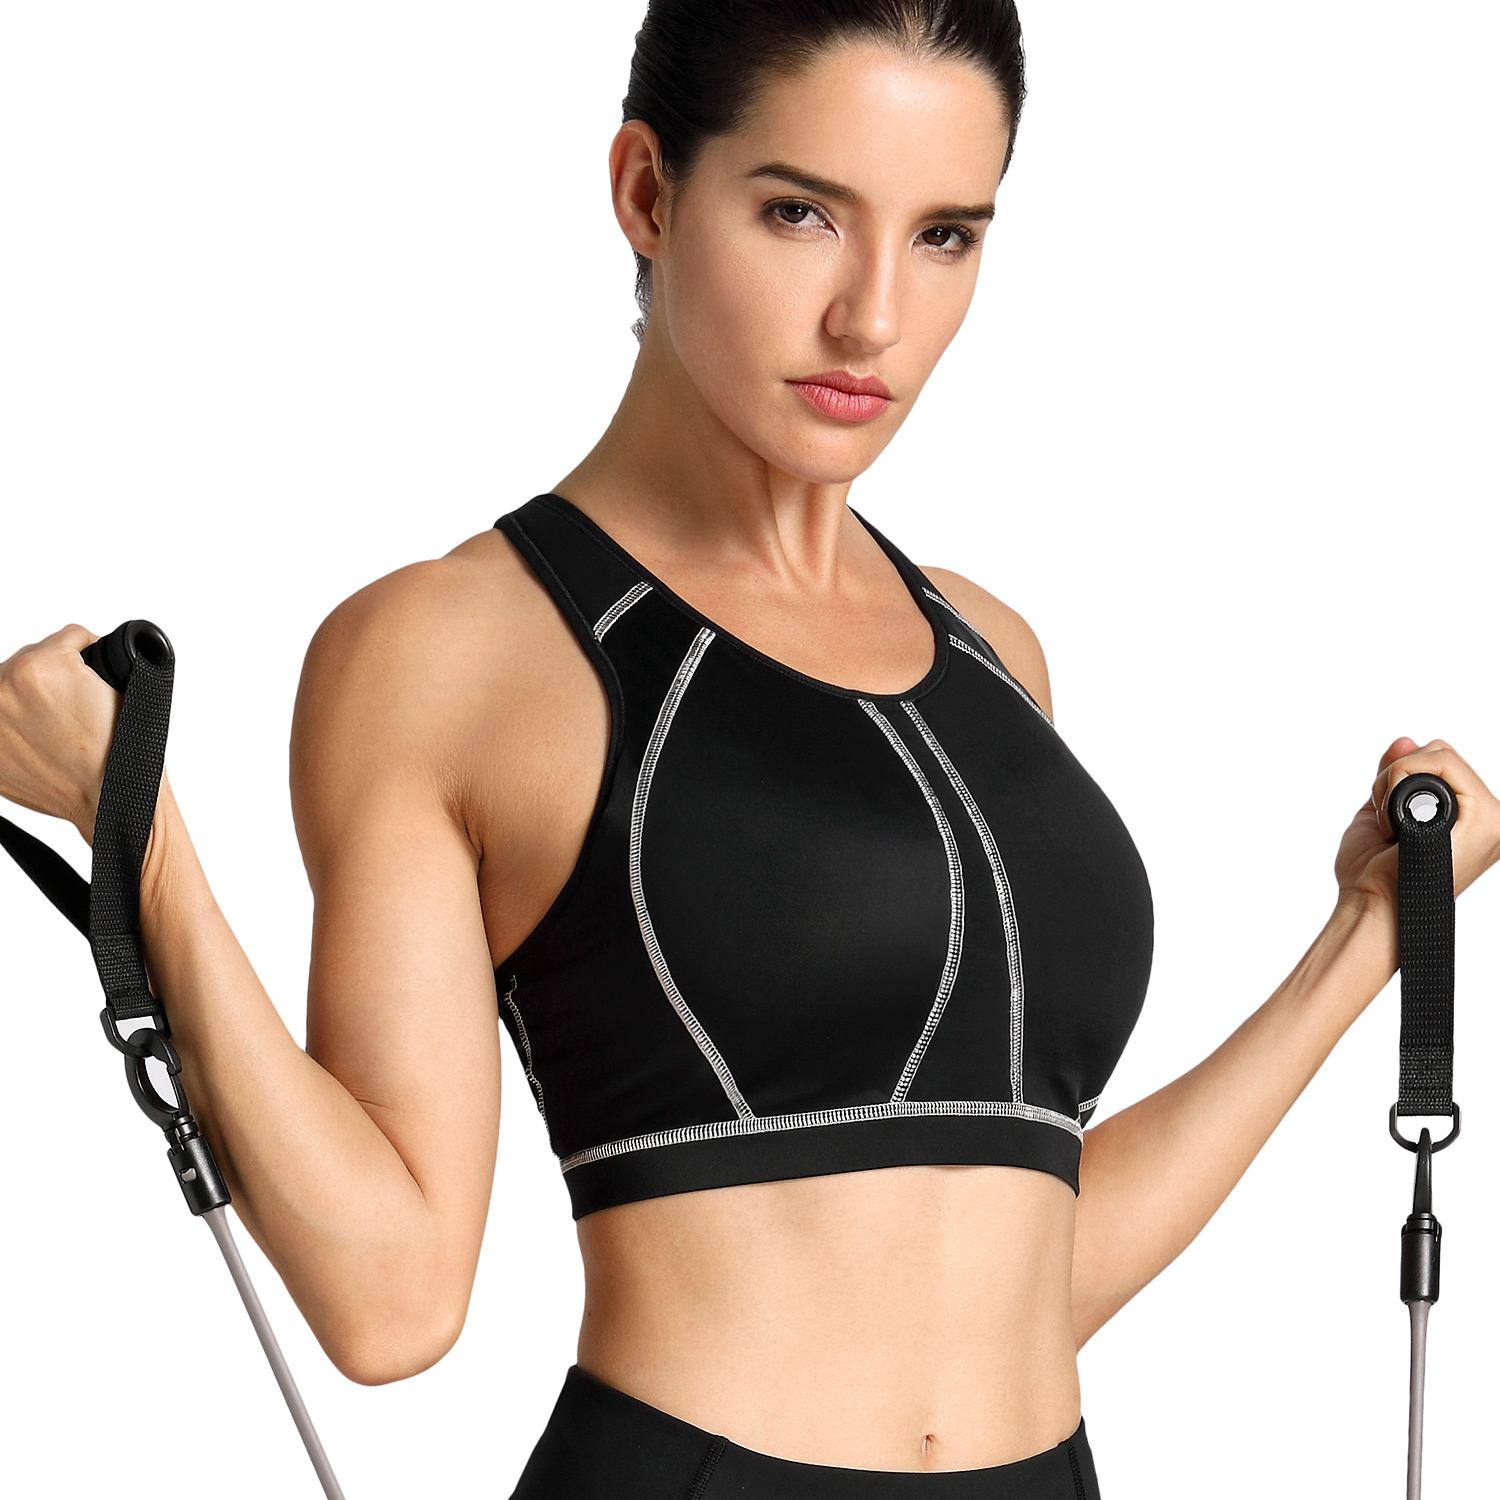 Women's Full Coverage Extra Strong Level 3 Wirefree Active Molded Bra